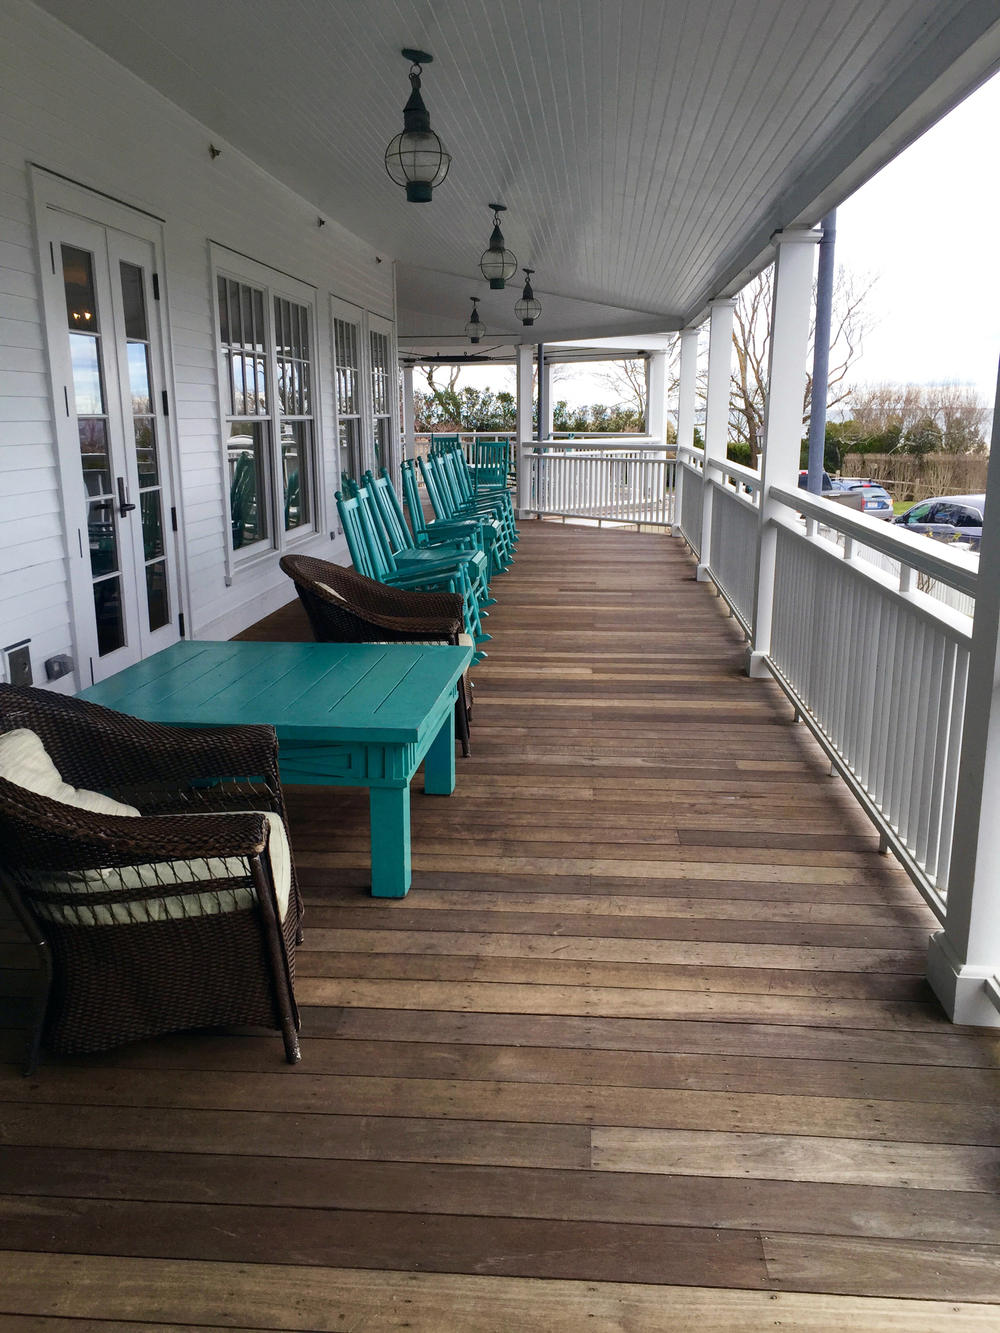 Harbor View Hotel porch